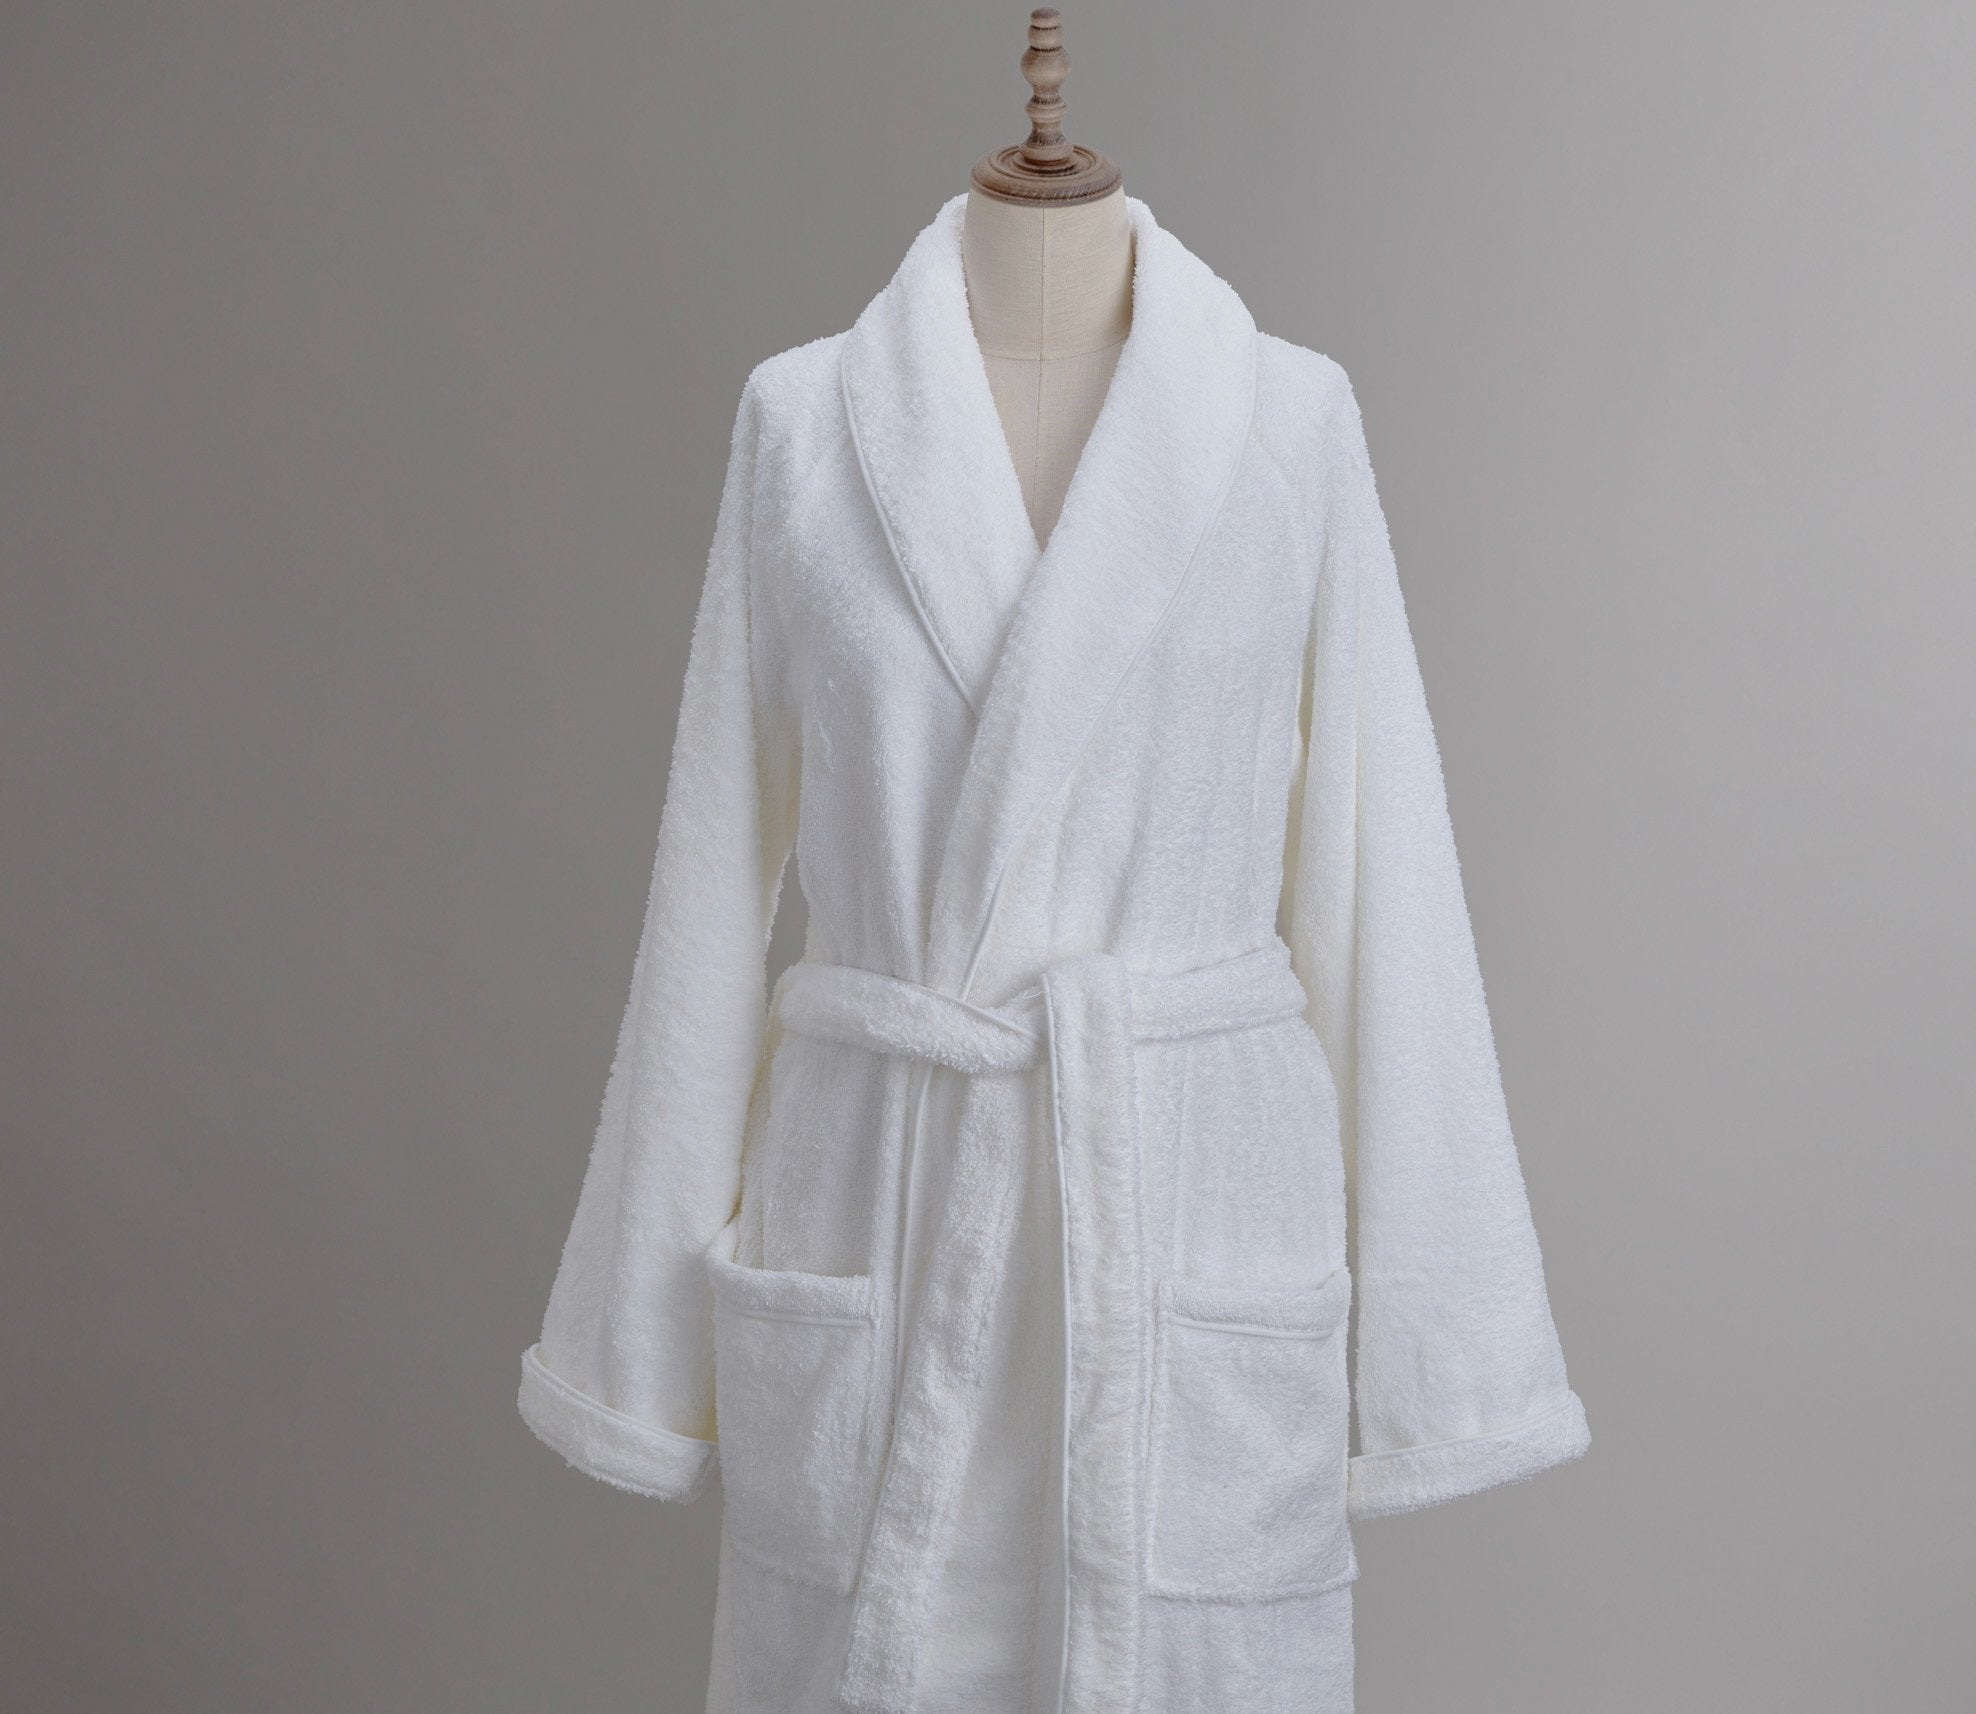 Cairo Robe White Large Product Image 1